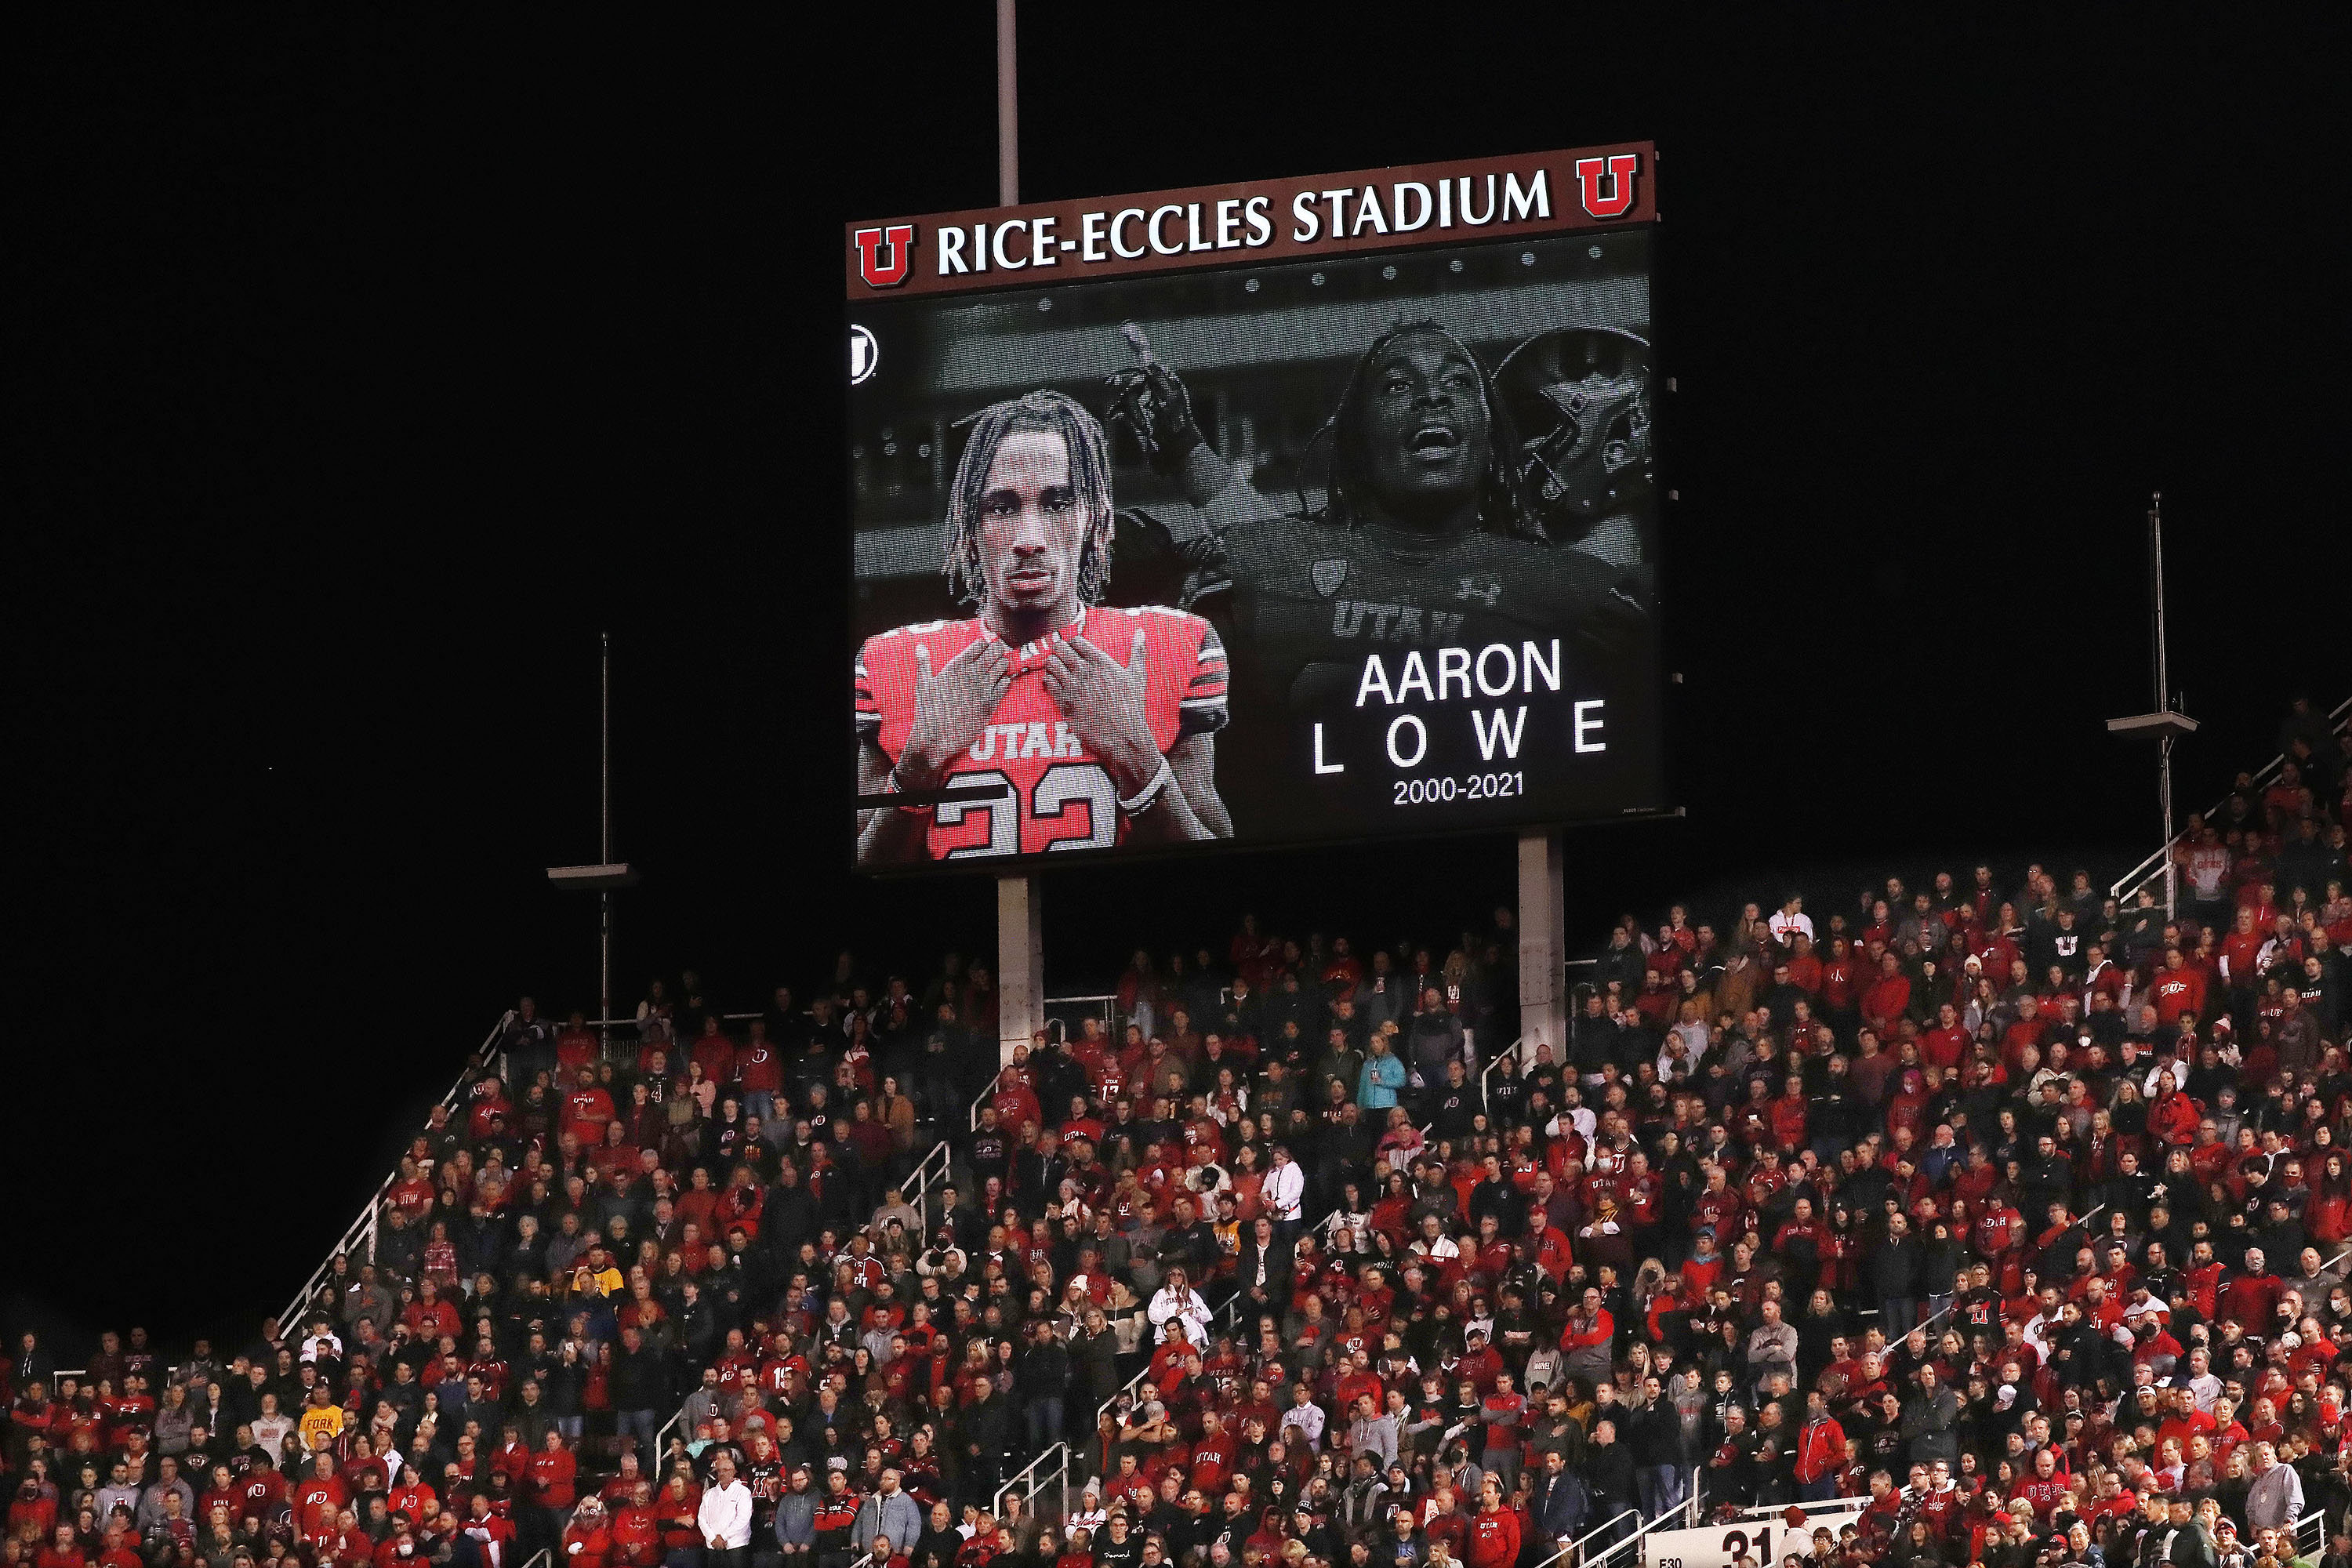 Sophomore defensive back Aaron Lowe, who was shot and killed on Sept. 26, is honored in Salt Lake City on Saturday, Oct. 16, 2021.